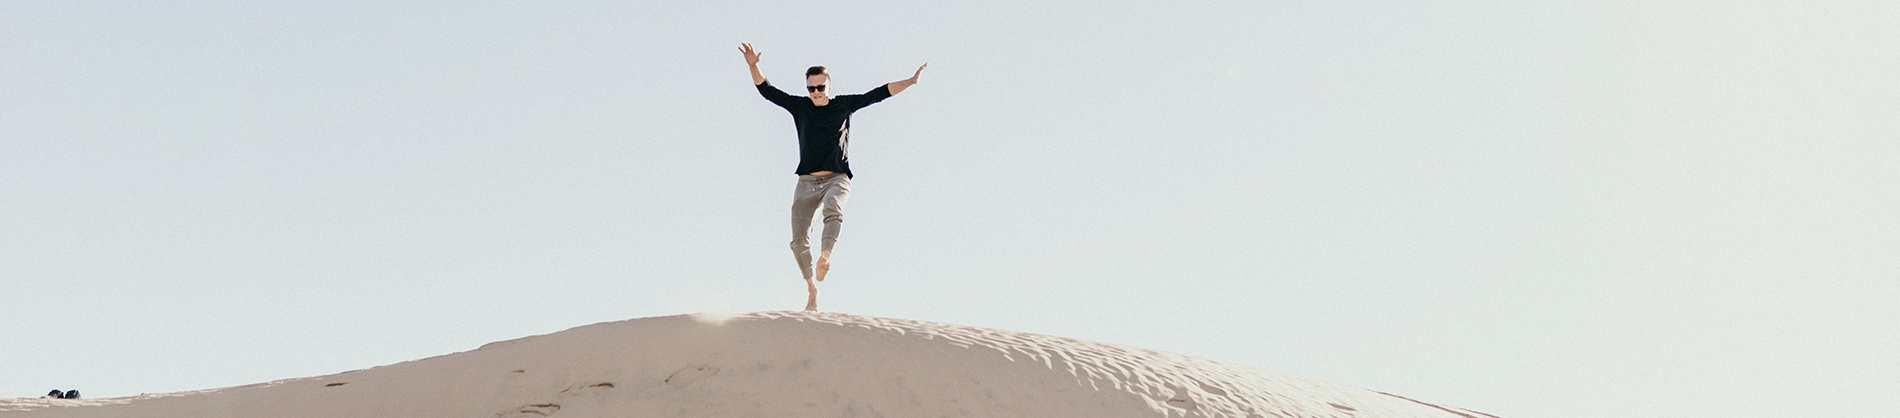 A man jumping down a sand dune with his hands in the air